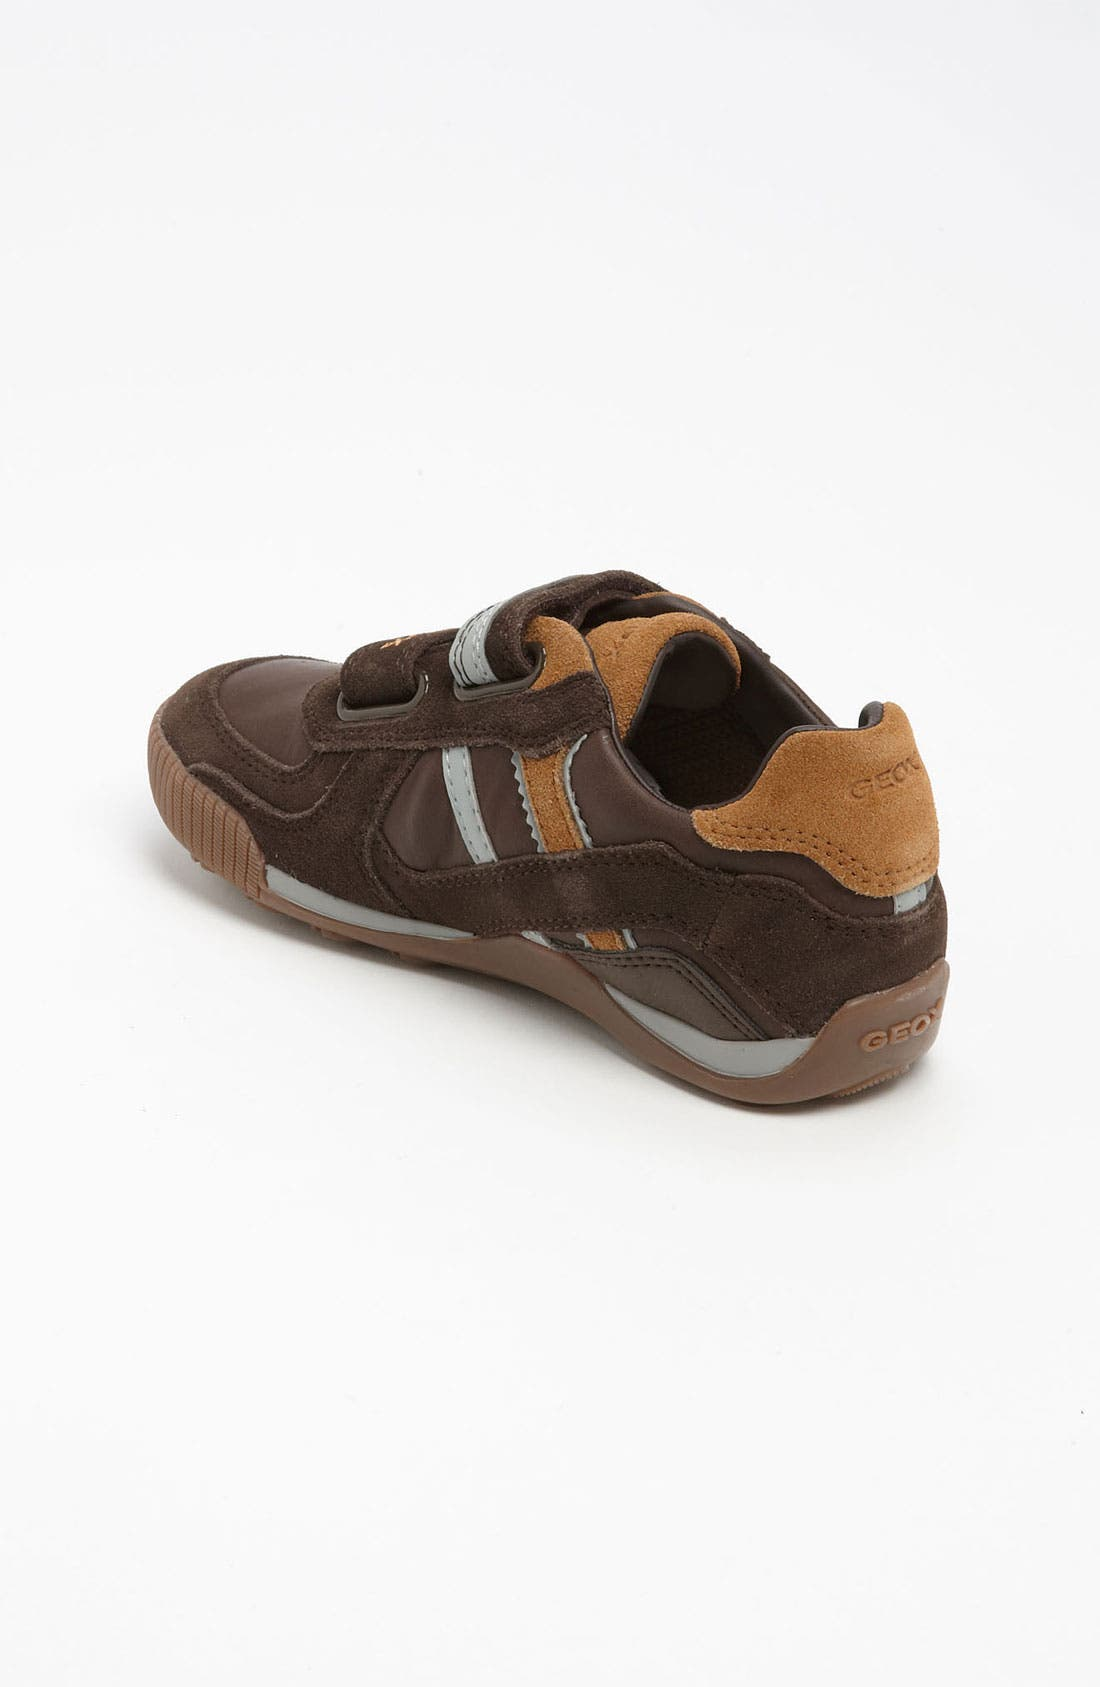 Alternate Image 2  - Geox 'Olimpus' Sneaker (Toddler, Little Kid & Big Kid)